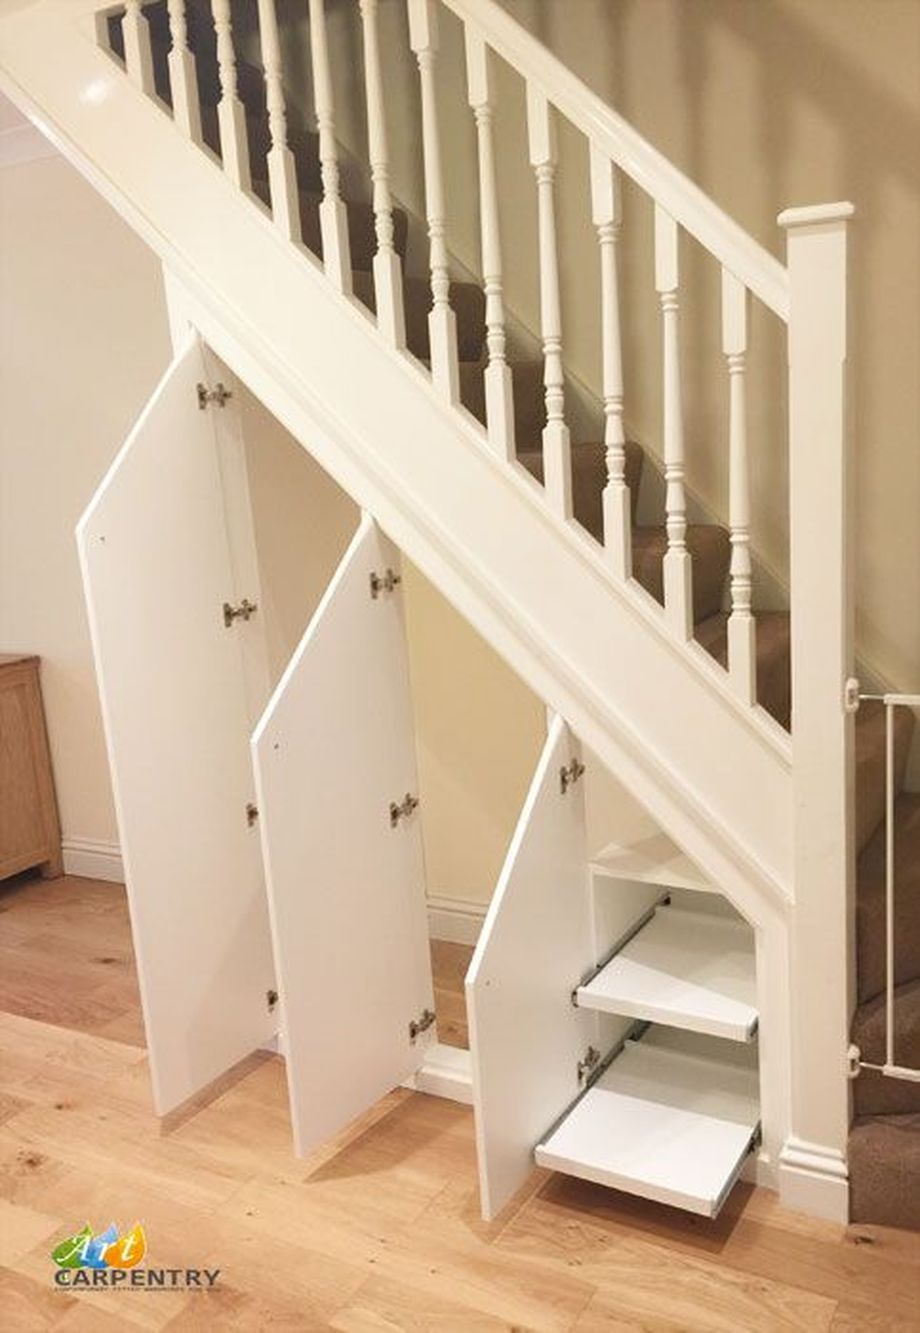 Awesome Cool Ideas To Make Storage Under Stairs 1 Under Stairs Cupboard Storage Under Stairs Cupboard Staircase Storage